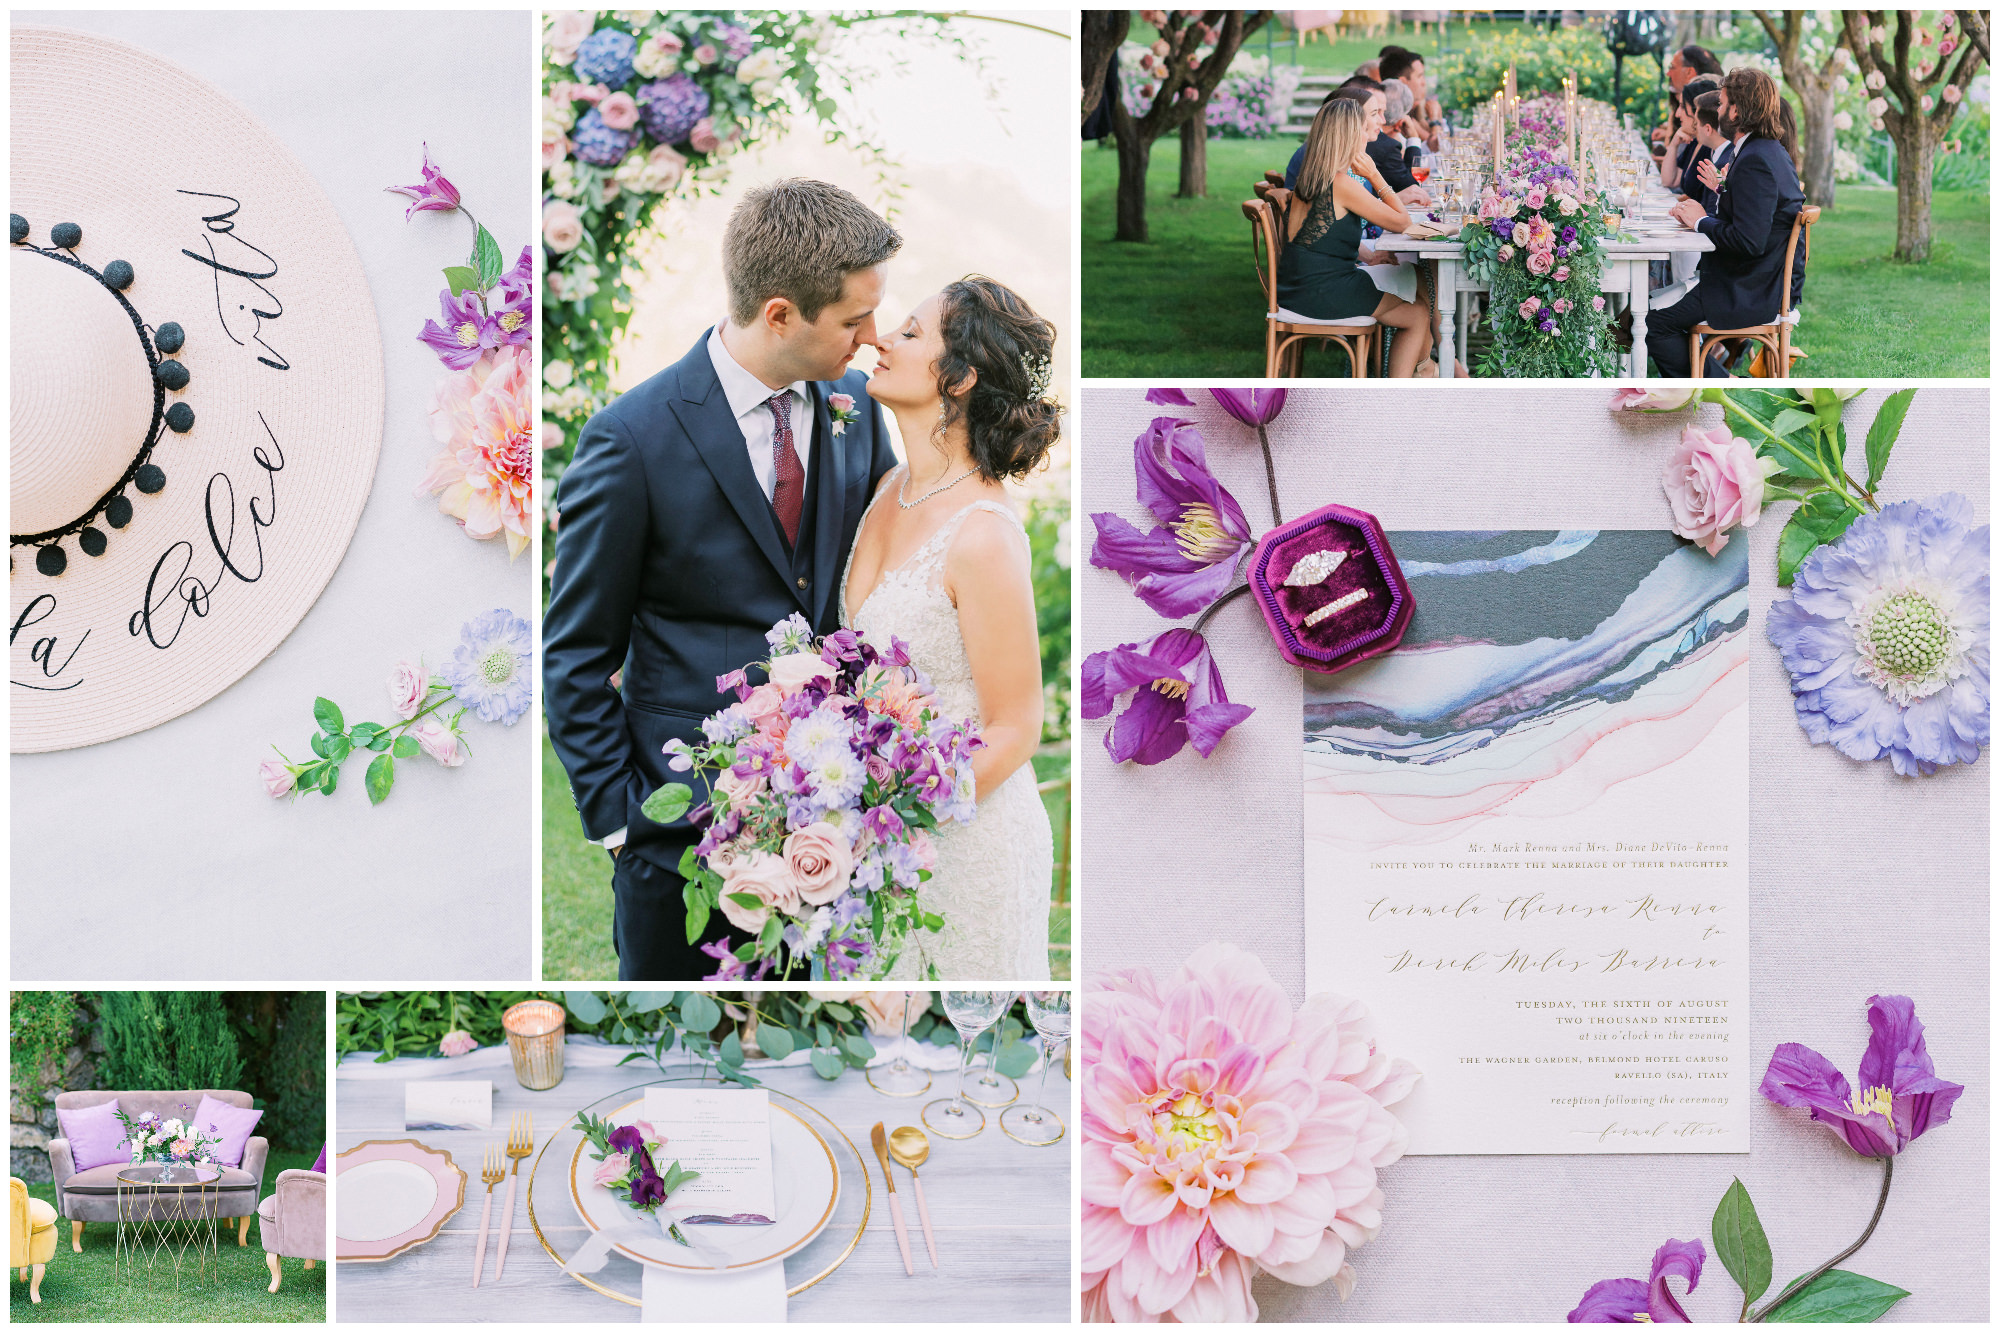 colorful wedding style - best of the decade photo by Elias Kordelakos - Italy